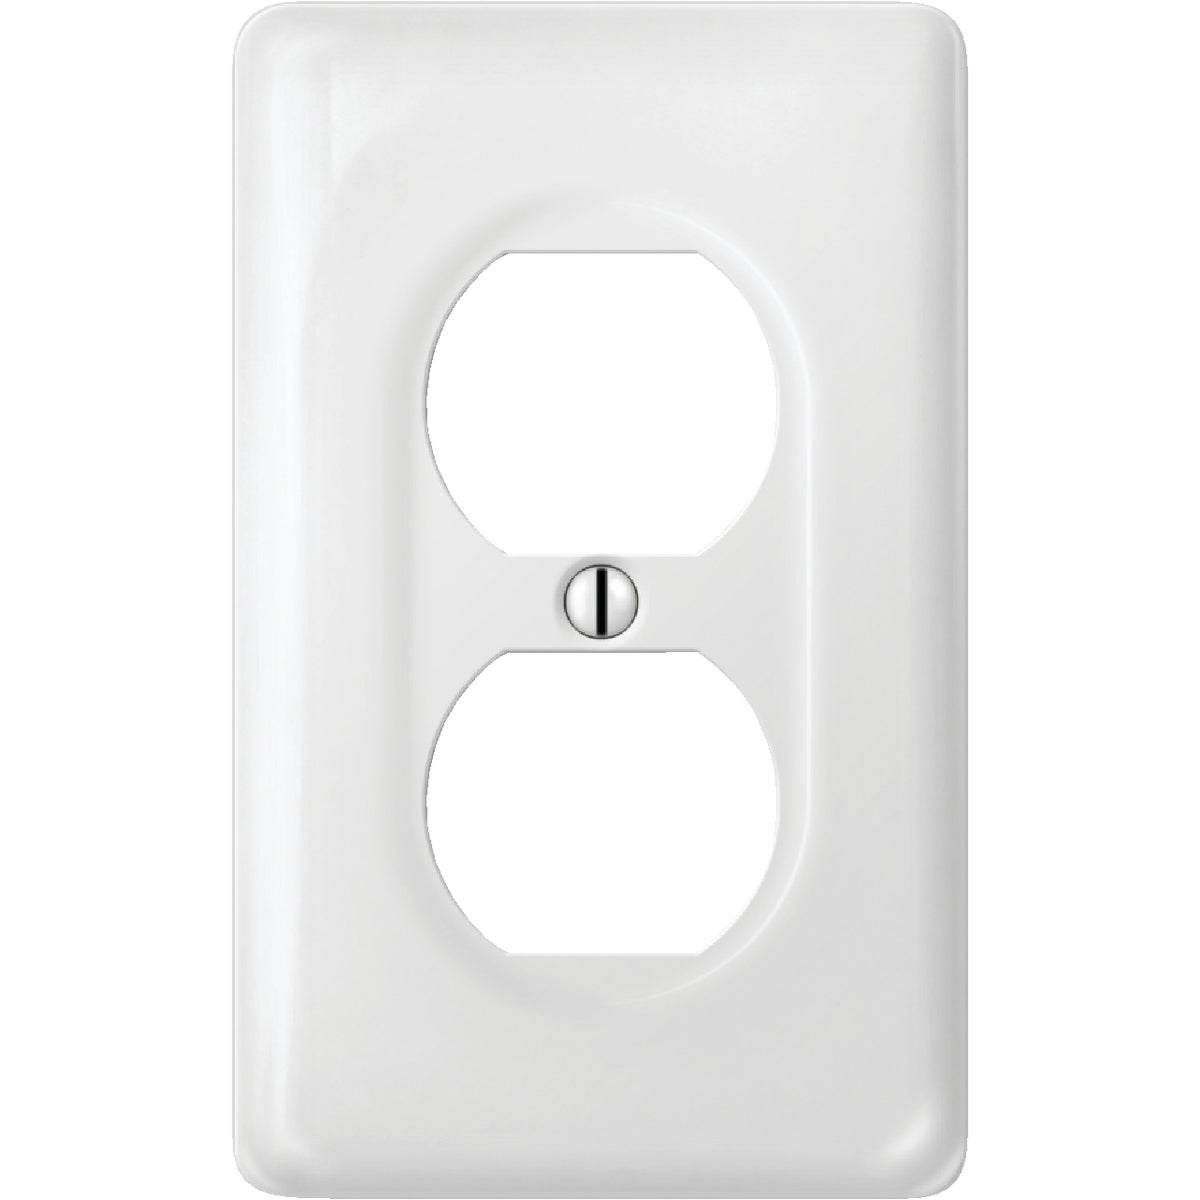 WHT OUTLET WALL PLATE - 988CW by Jackson Deerfield Mf